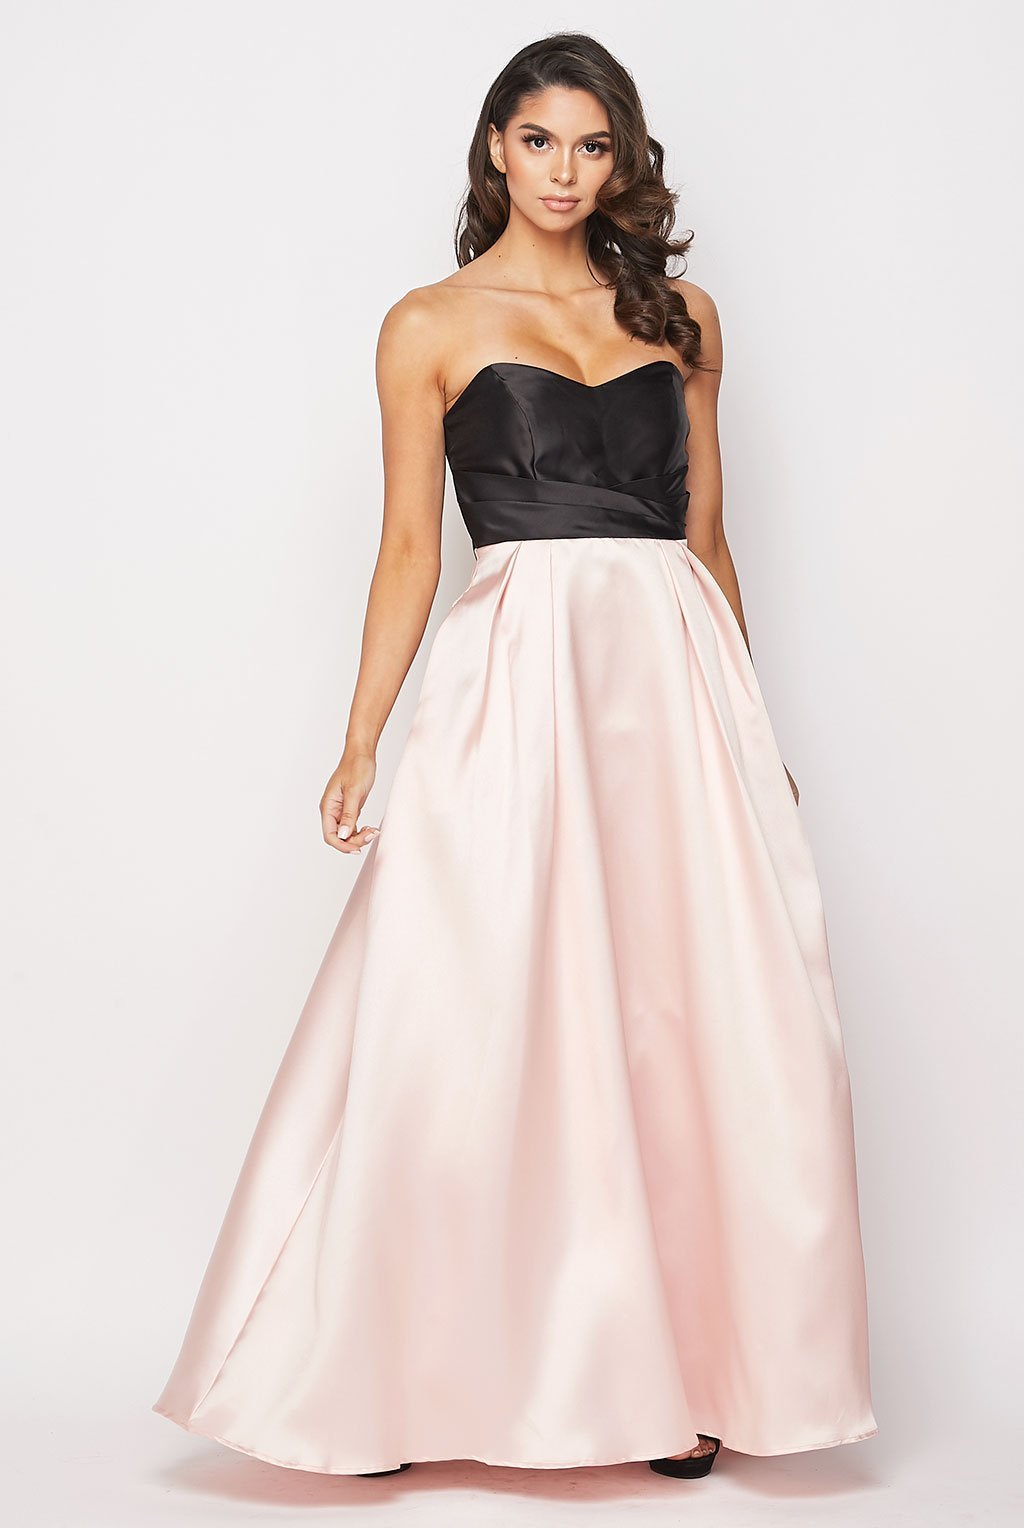 Teeze Me | Satin And Lace Ball Gown | Peach/Black